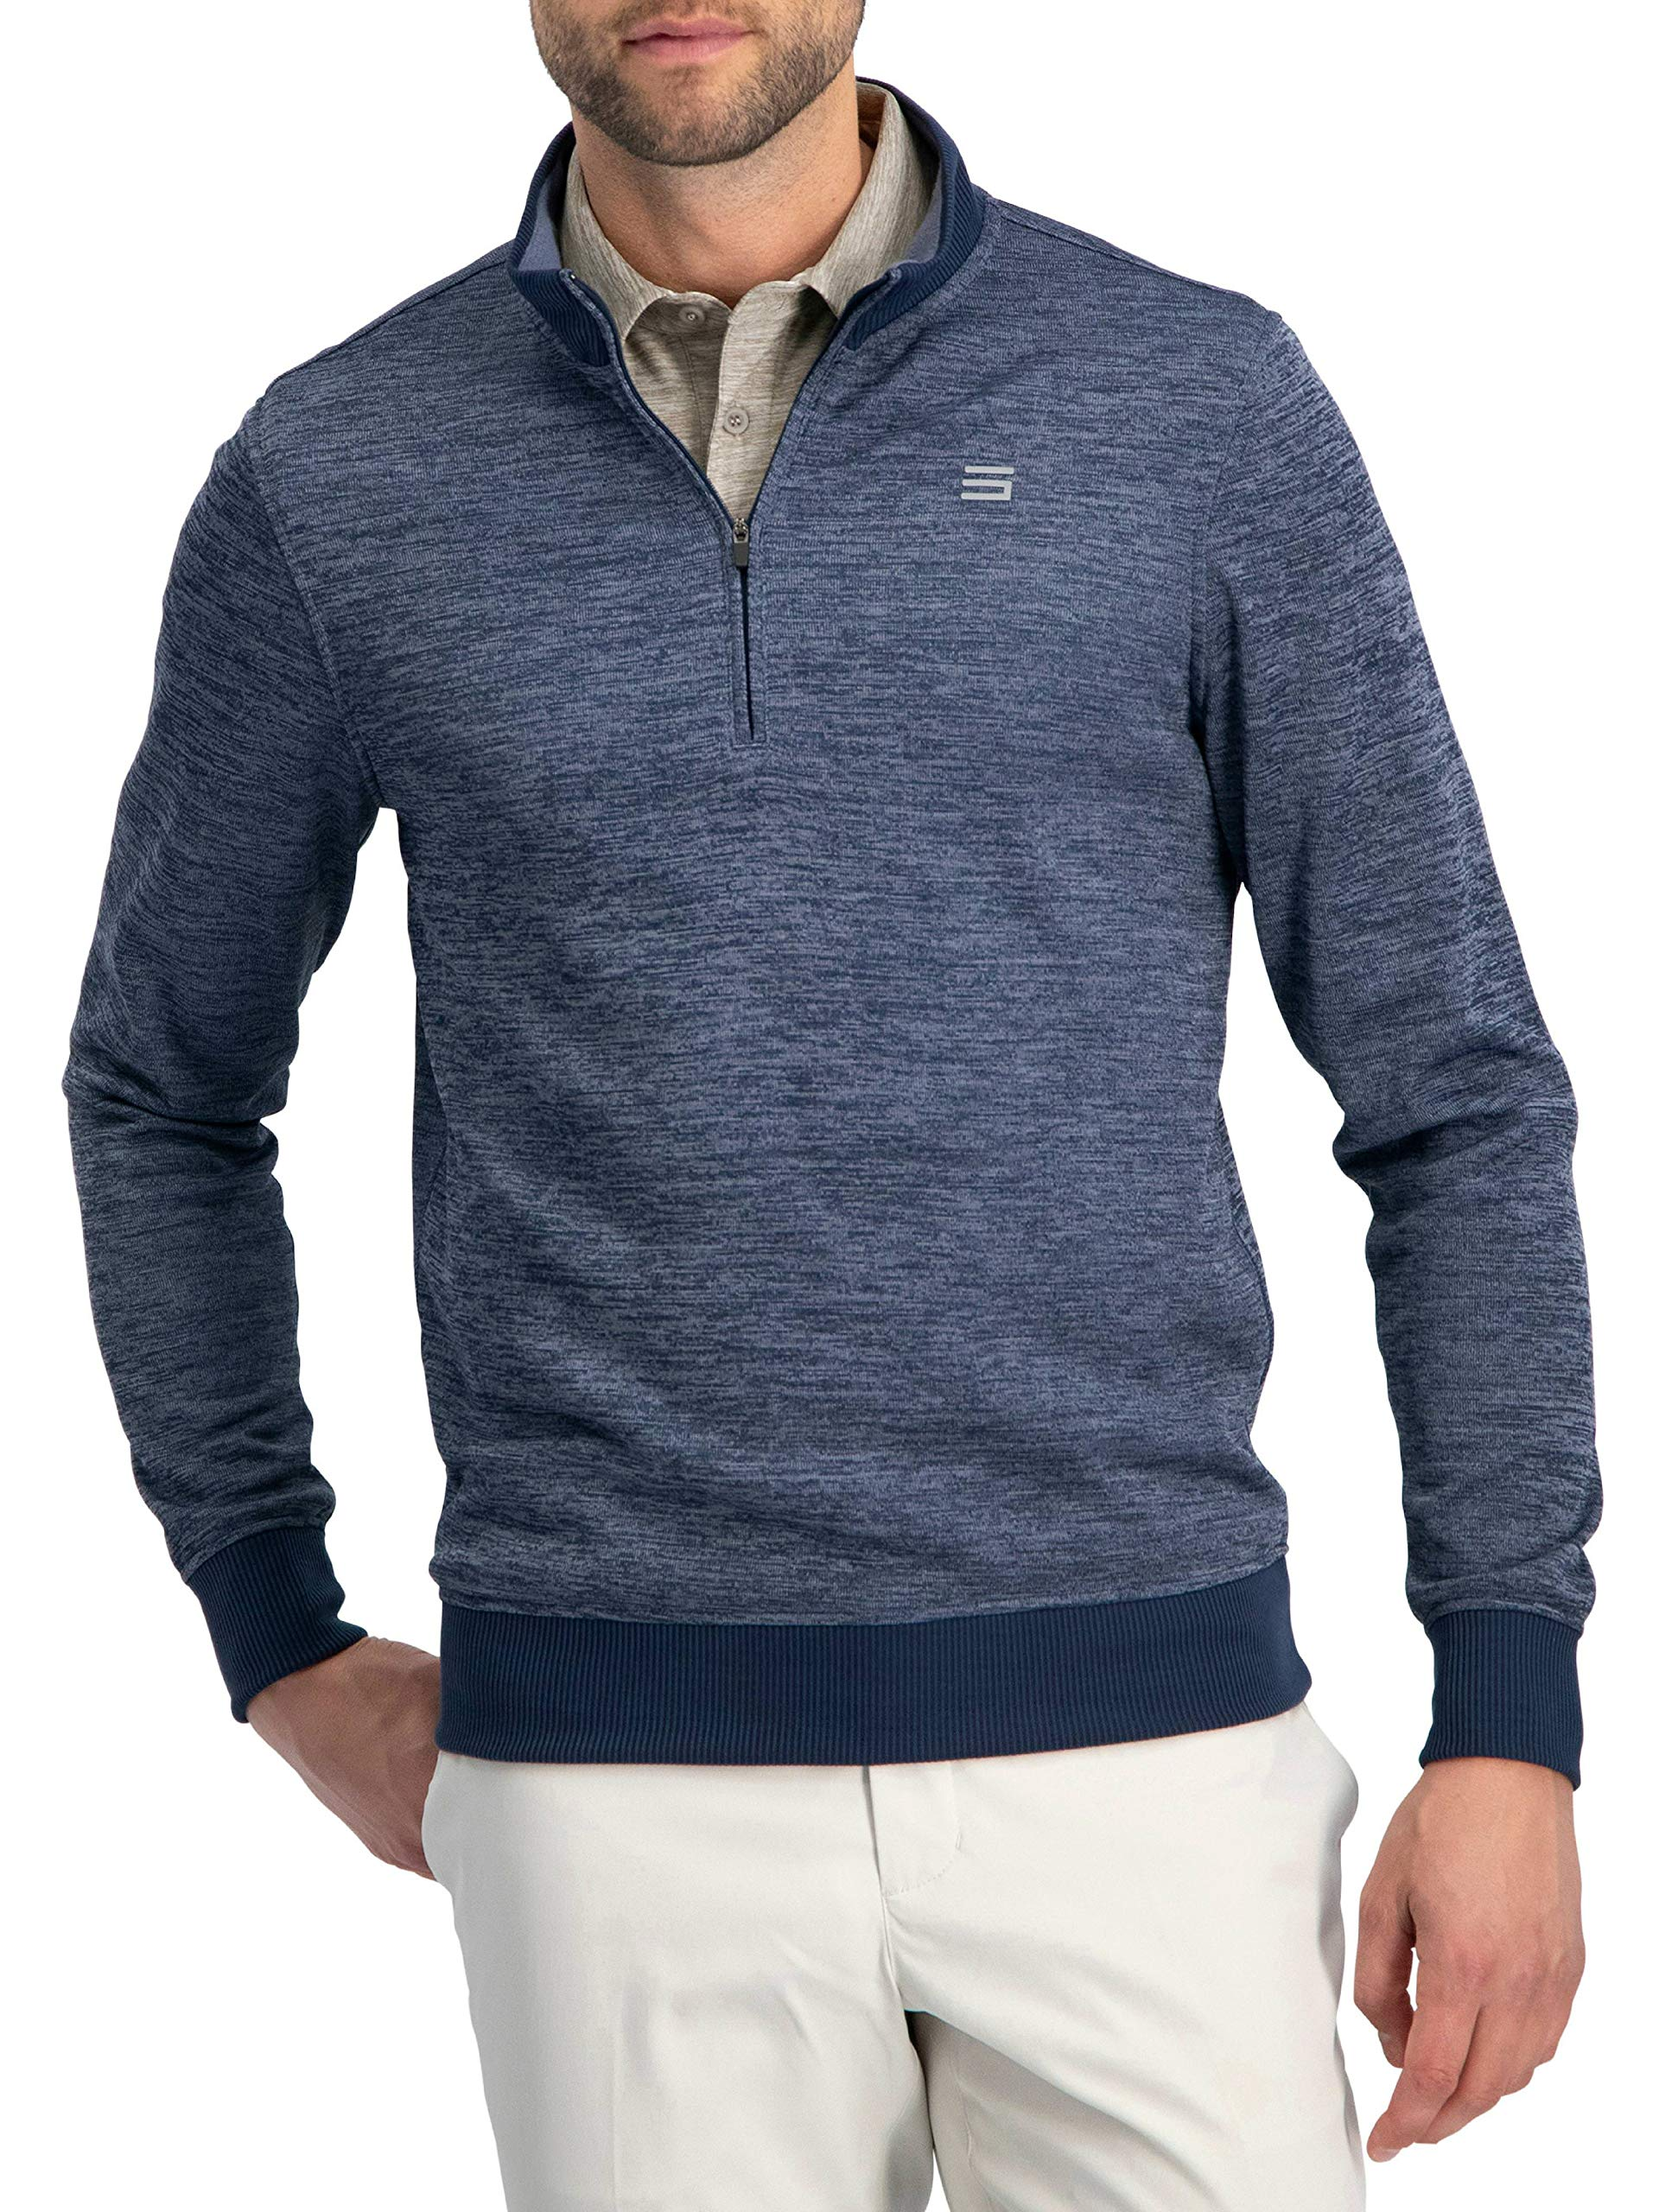 Dry Fit Pullover Sweaters for Men - Quarter Zip Fleece Golf Jacket - Tailored Fit Deep Navy by Three Sixty Six